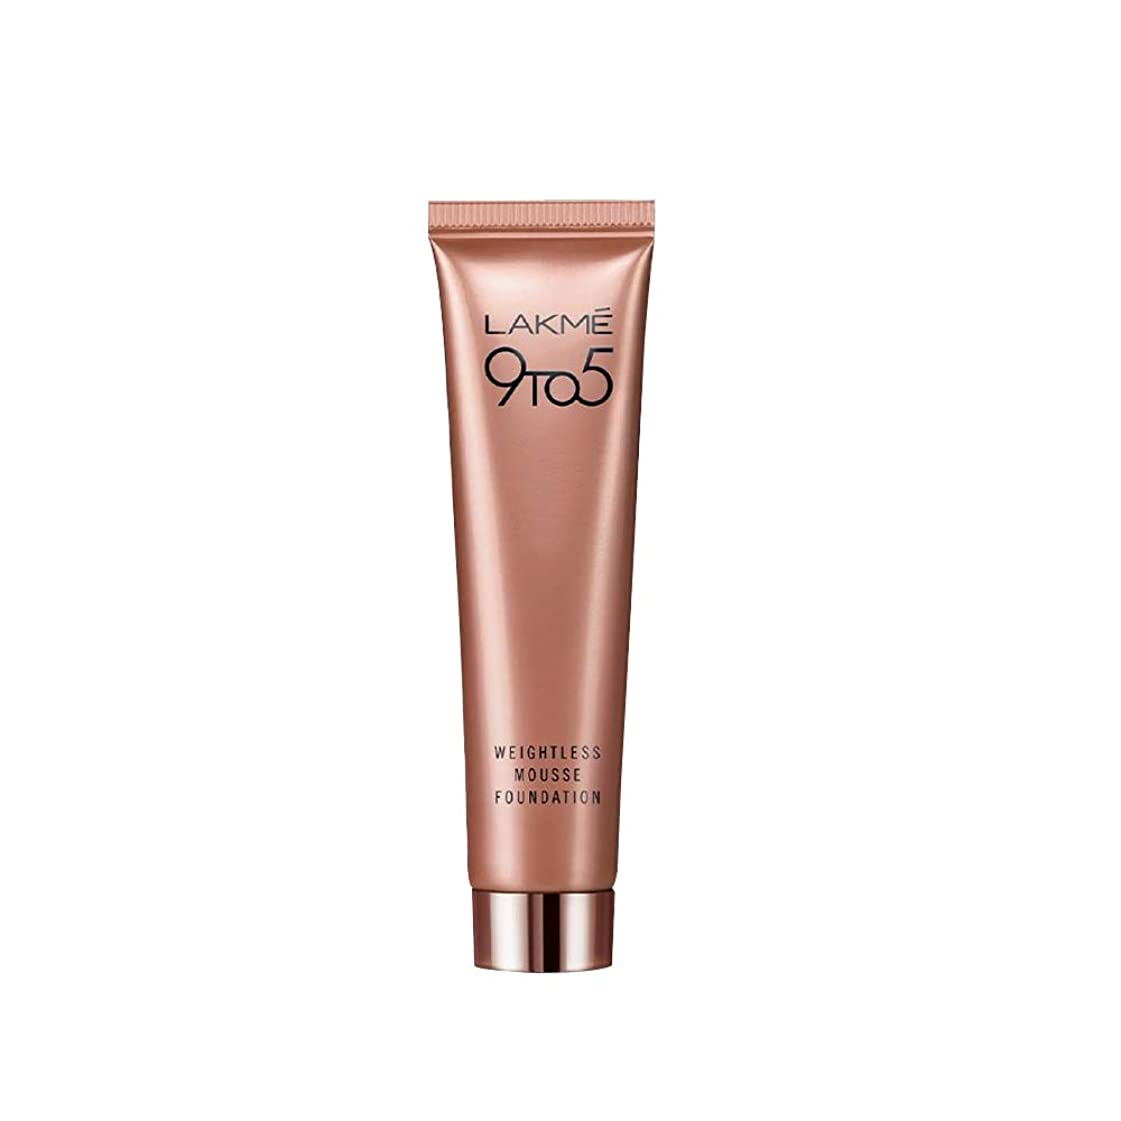 同僚闘争の配列Lakme 9 to 5 Weightless Mousse Foundation, Rose Ivory, 29 g